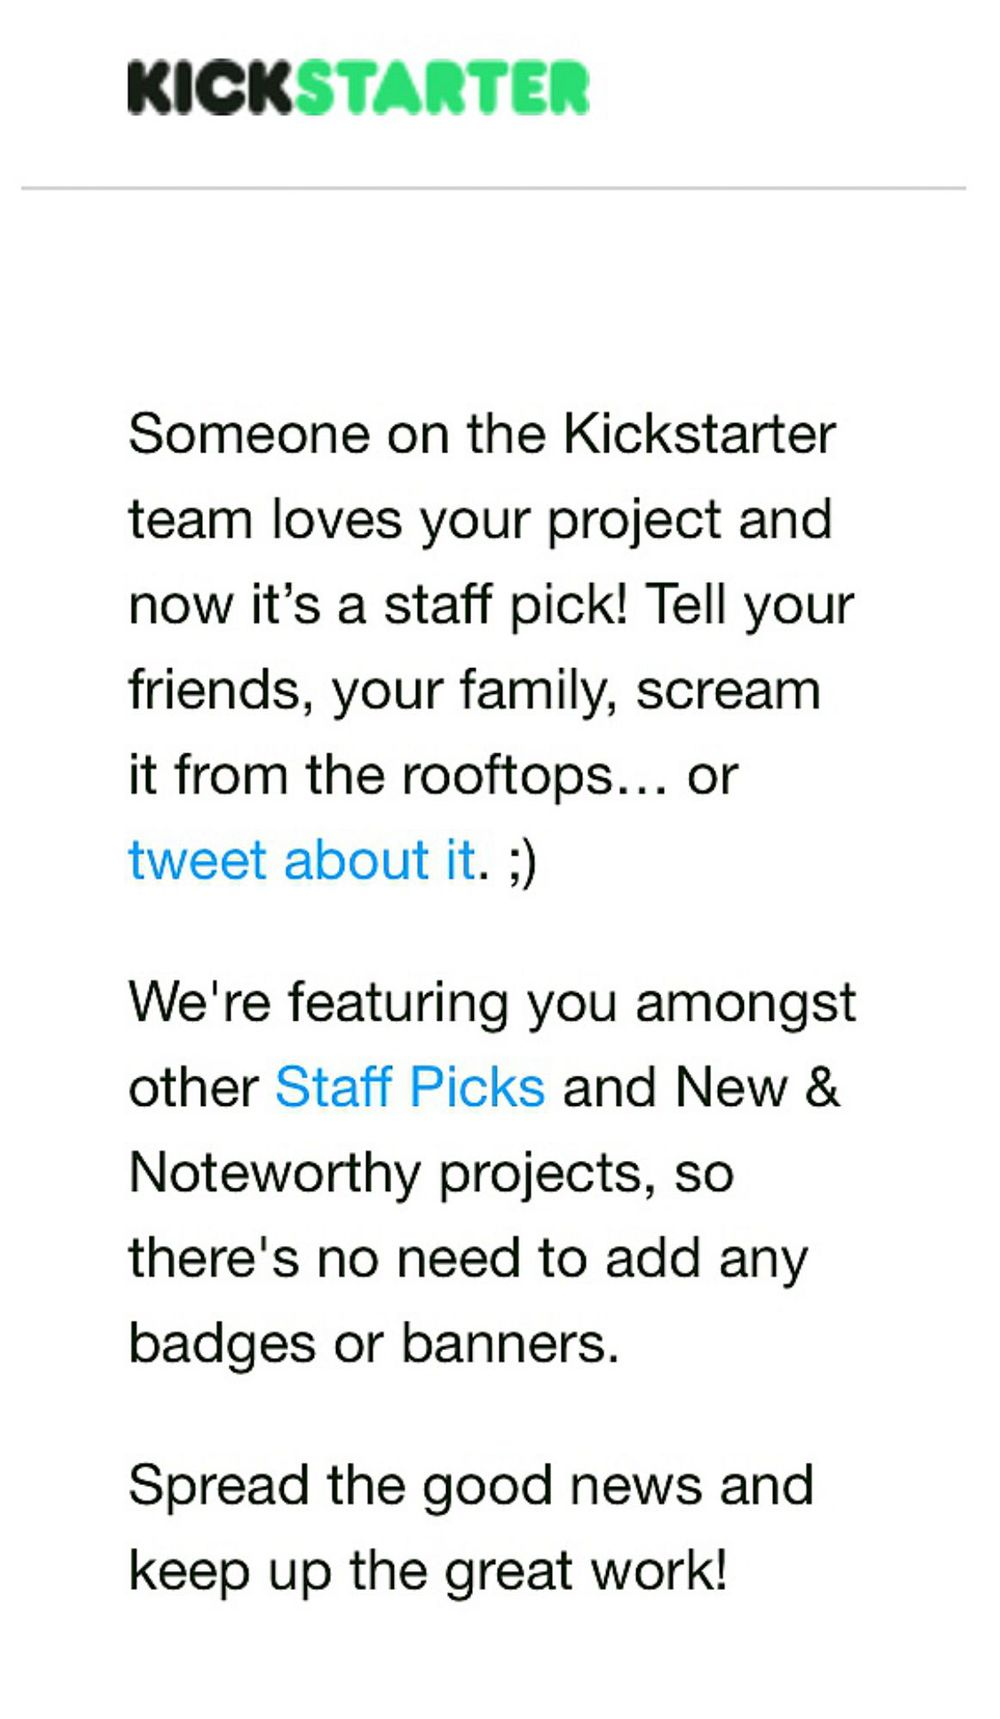 Email of being featured and chosen as a  Kickstarter Staff Pick